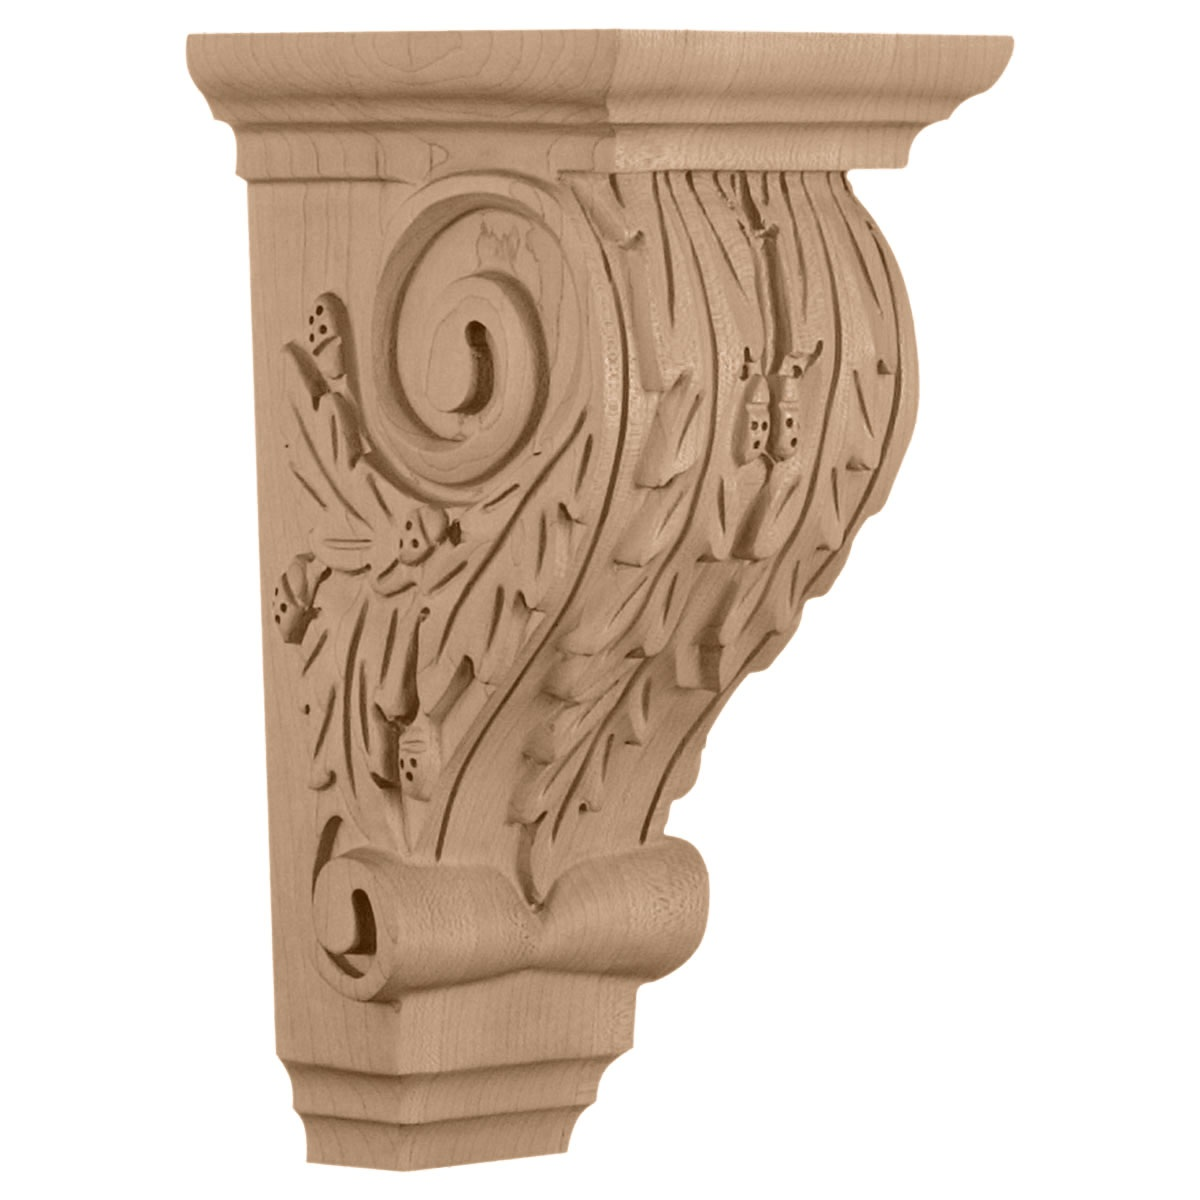 COROL2 Medium Oak Leaf Corbel